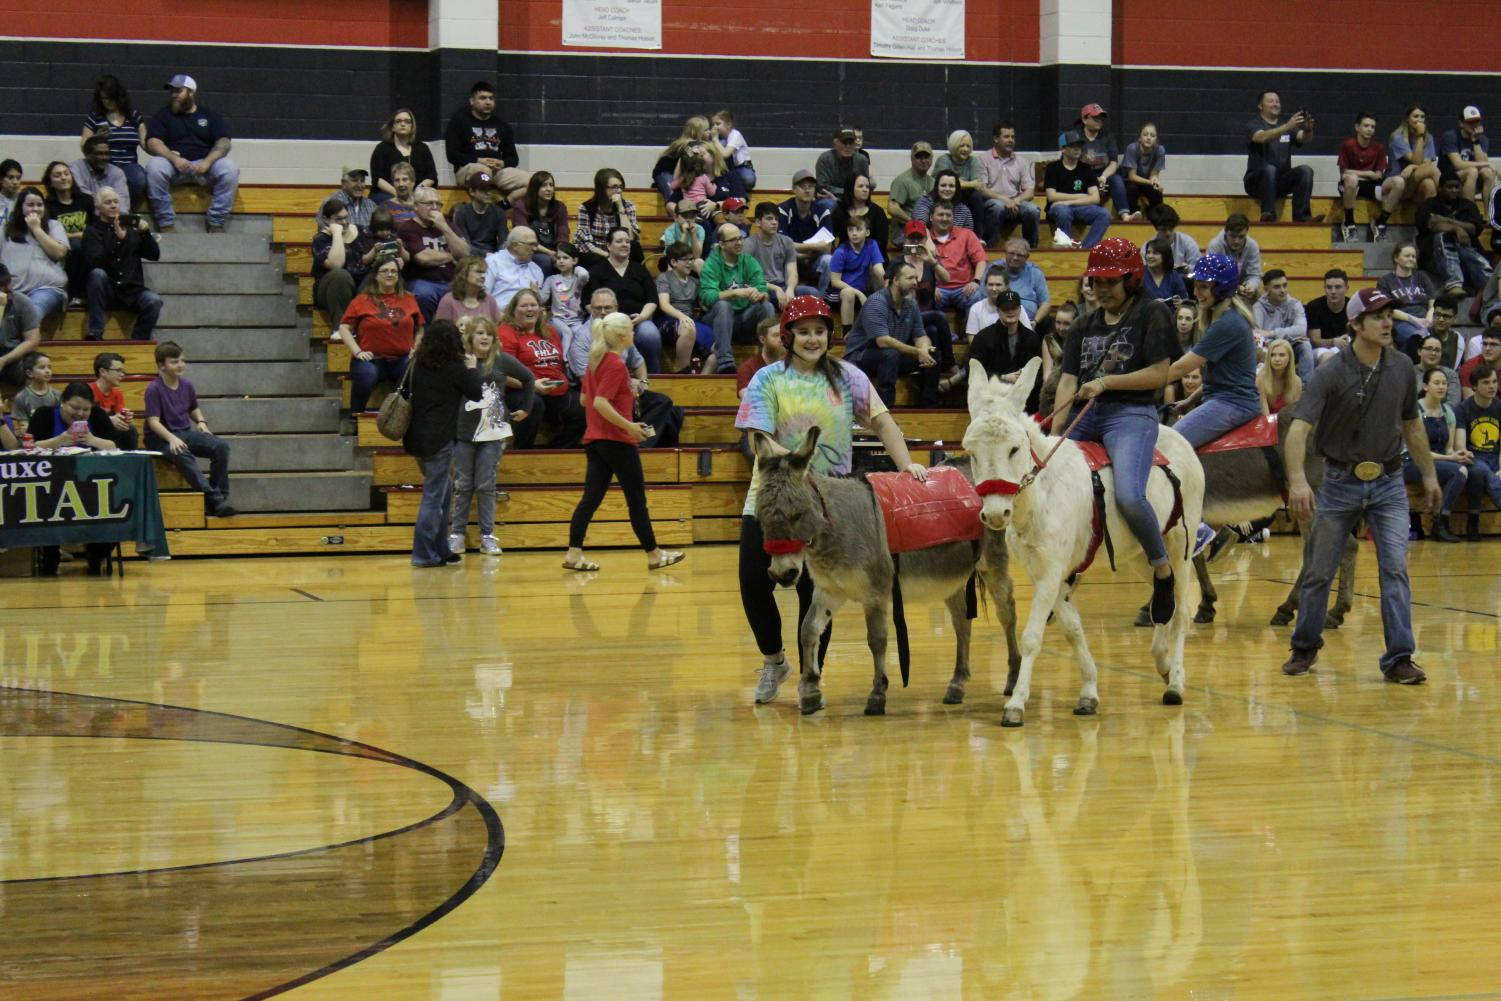 Juniors Maci Hatcher and Kristal Loredo climb on their donkeys for a round of Donkey Basketball.